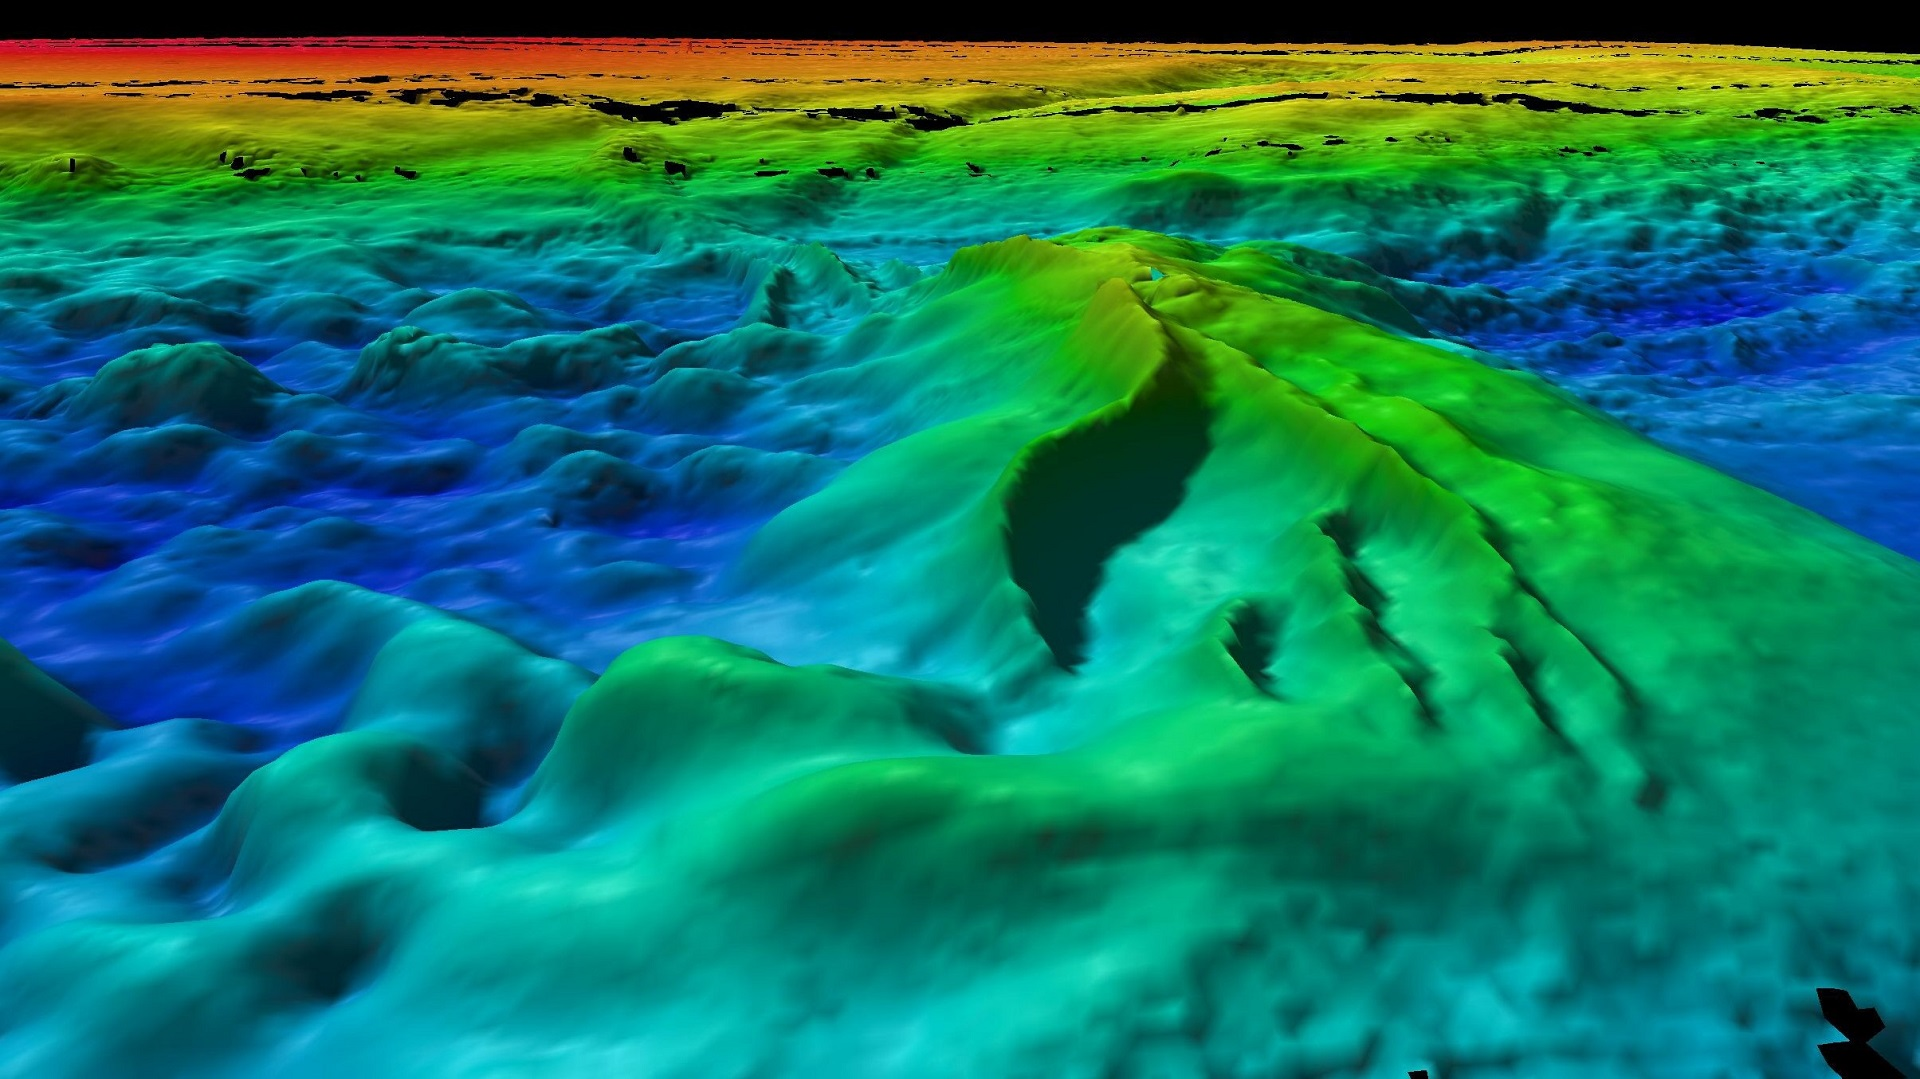 a false colour underwater map showing the relief of the seafloor